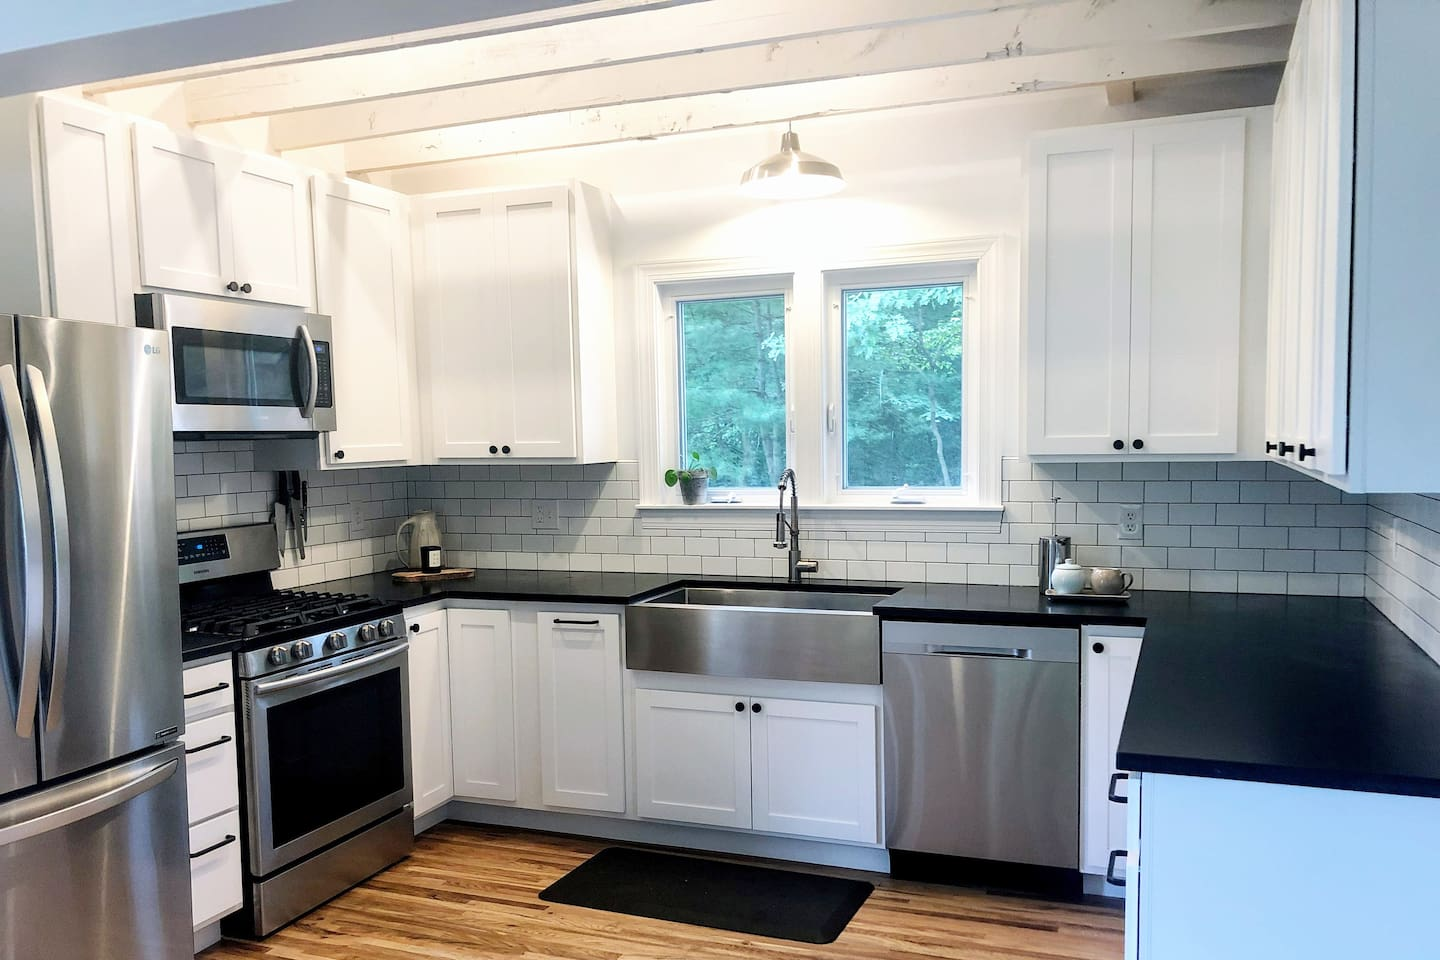 Bright, open kitchen with farm sink and stainless steel appliances